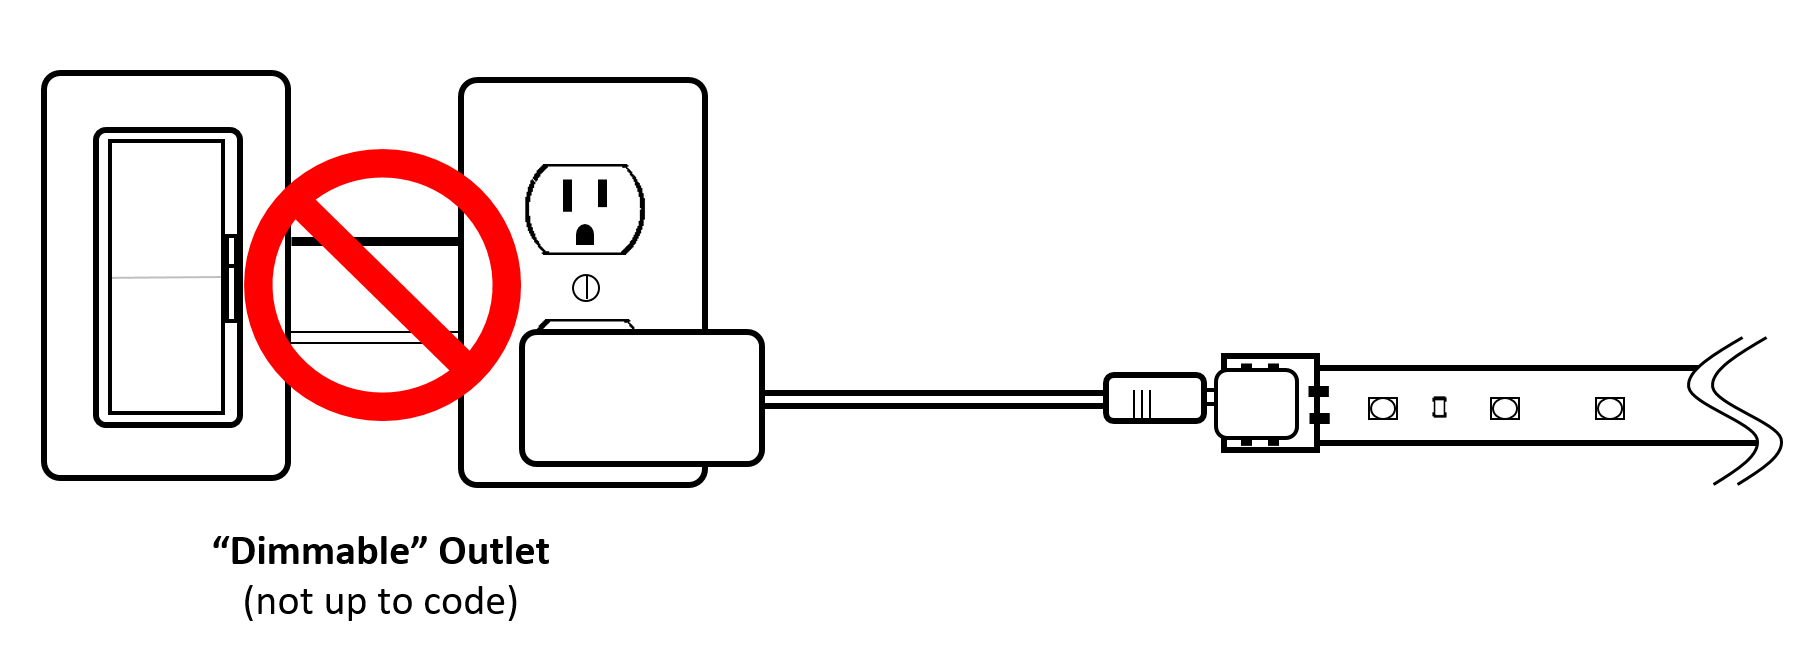 Is It Up To Code Dimmable Led Systems Inspiredled Blog Ac Receptacle Wiring Electrical First Of All A Standard Plug In Power Supply Not Designed Be Dimmed Using High Voltage Control This Arrangement The Use